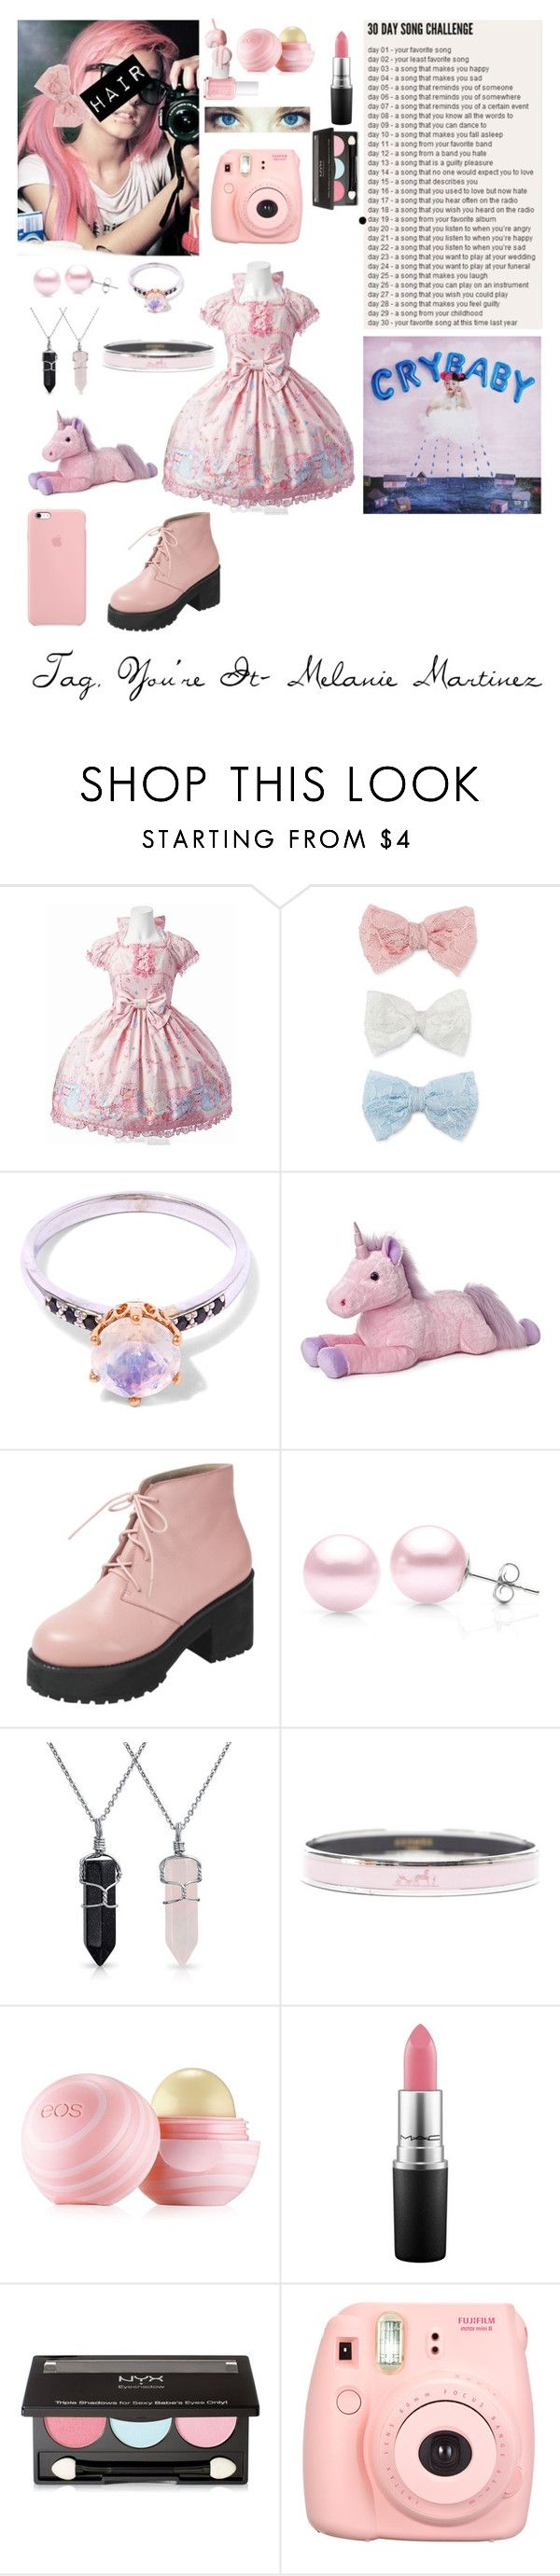 """""""(LATE) Tag, You're It- Melanie Martinez"""" by my-not-so-healthy-obsession ❤ liked on Polyvore featuring Decree, Anna Sheffield, Suzy Levian, Bling Jewelry, Hermès, Eos, MAC Cosmetics, NYX and Polaroid"""